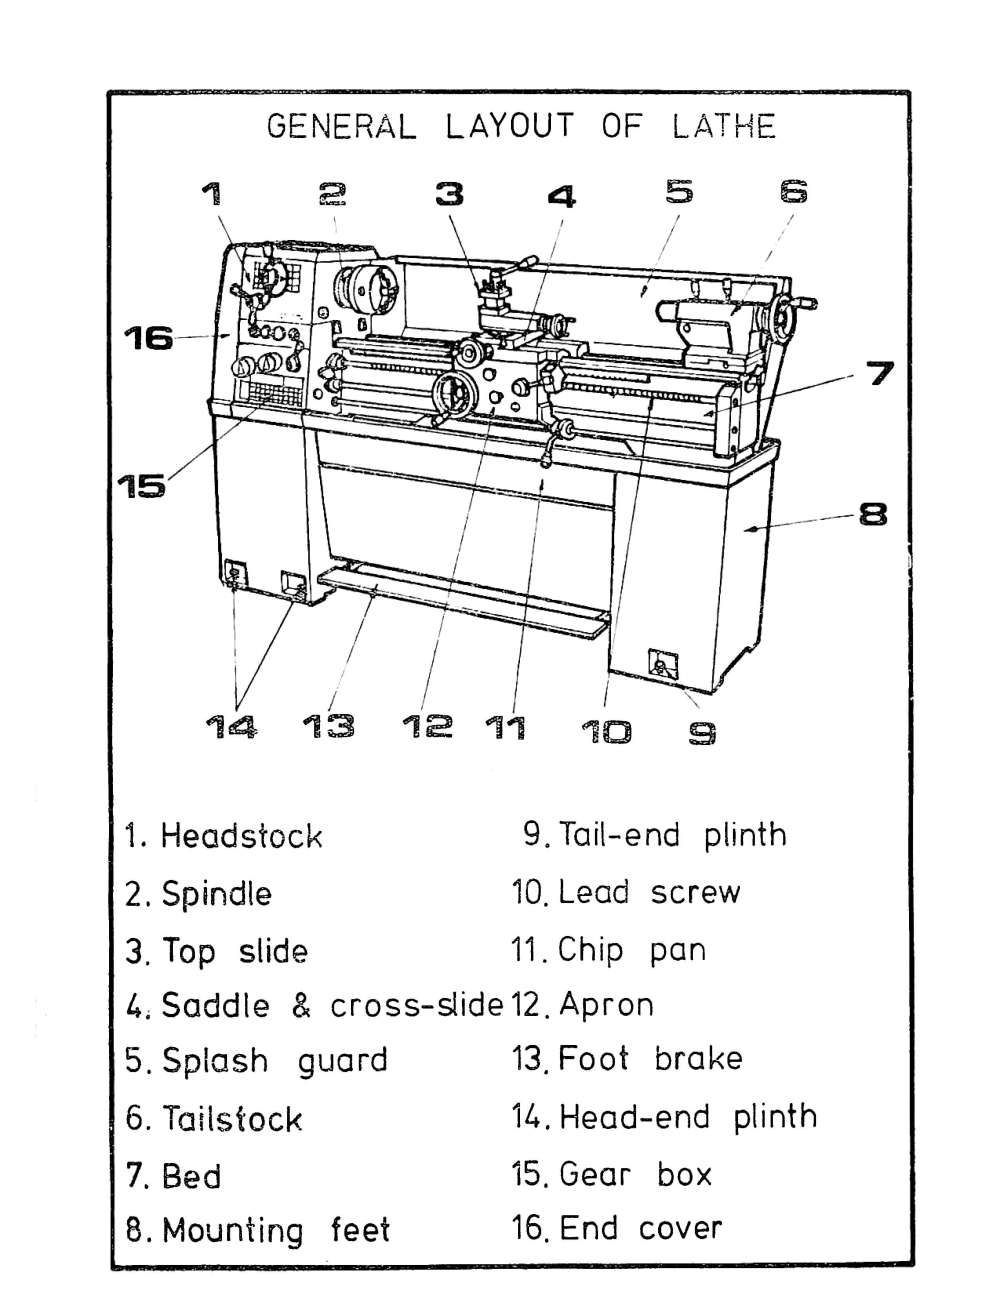 medium resolution of enco lathe wiring diagram 110 1340 wiring diagram expert enco lathe wiring diagram